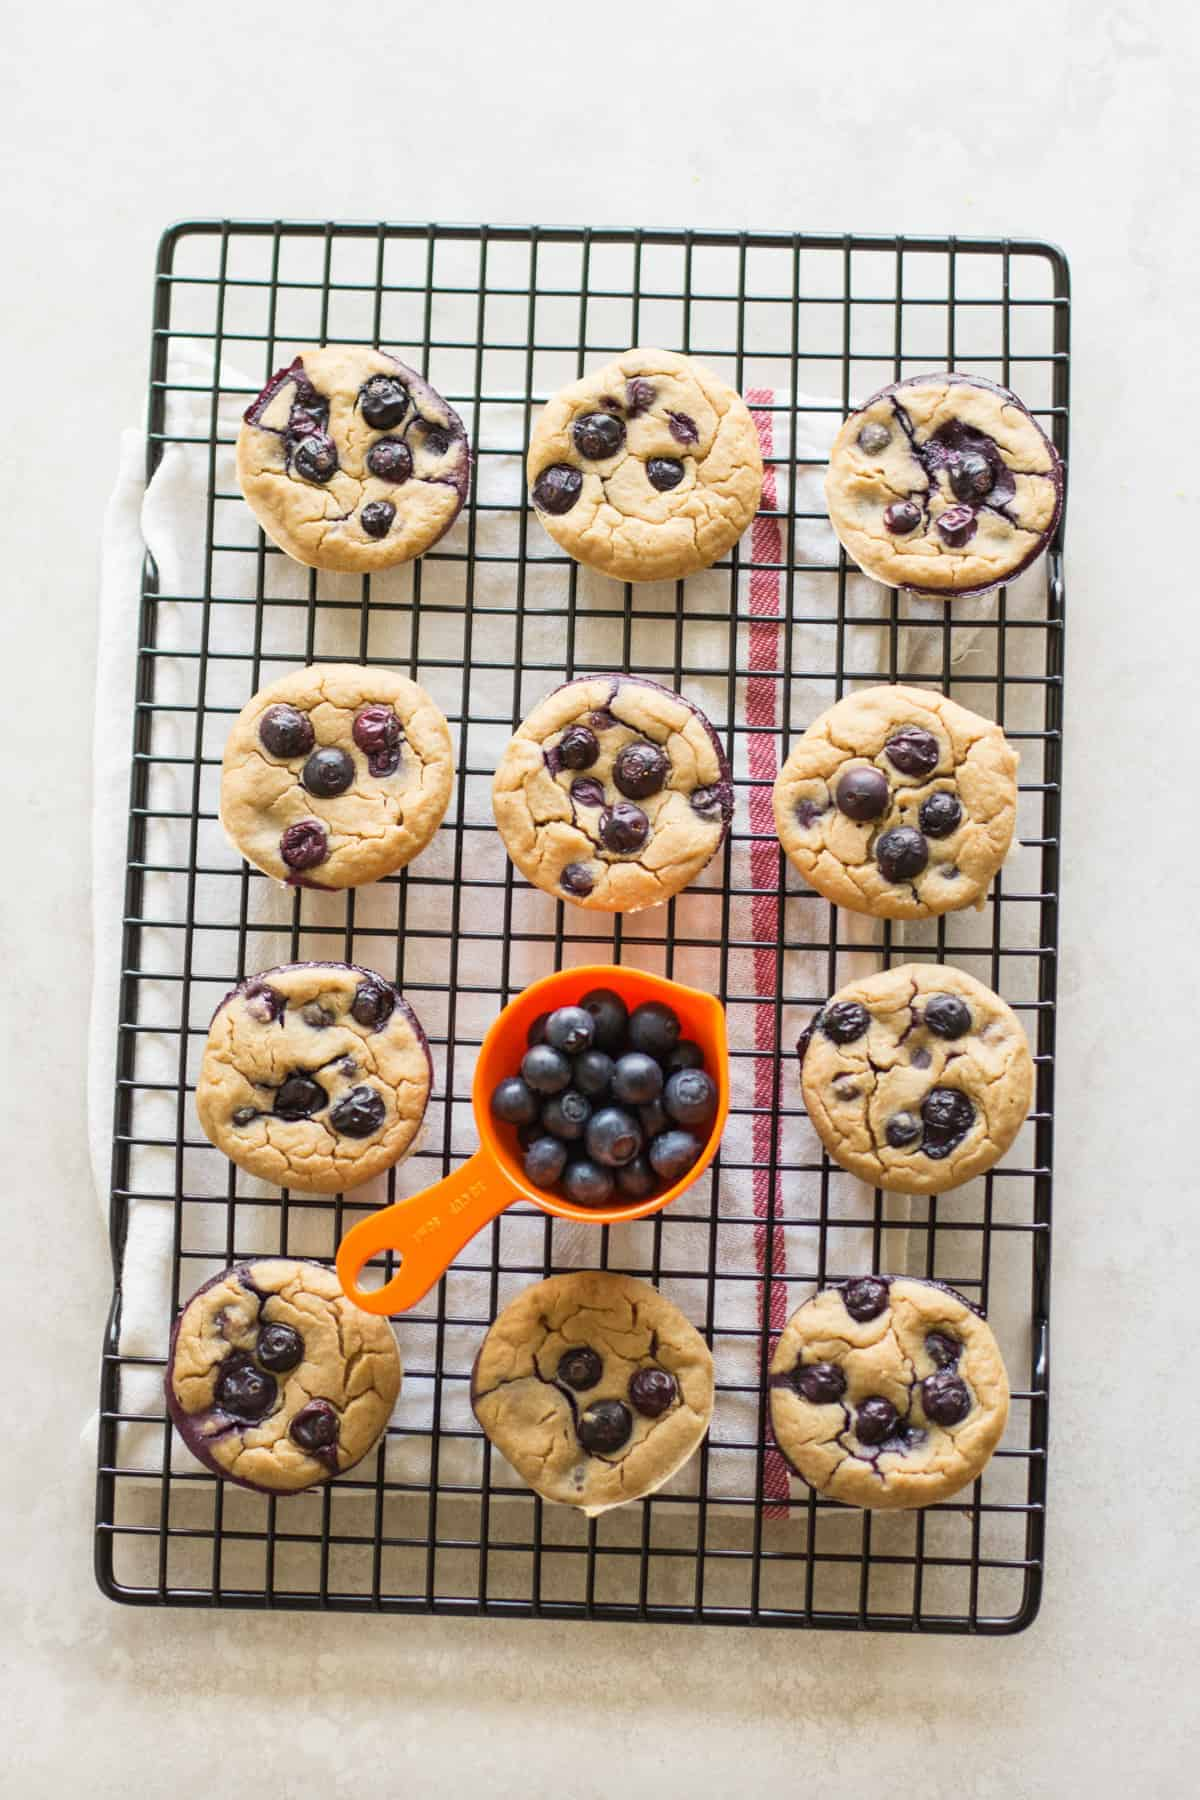 Blueberry muffins cooling on a wire rack with a cup of fresh blueberries